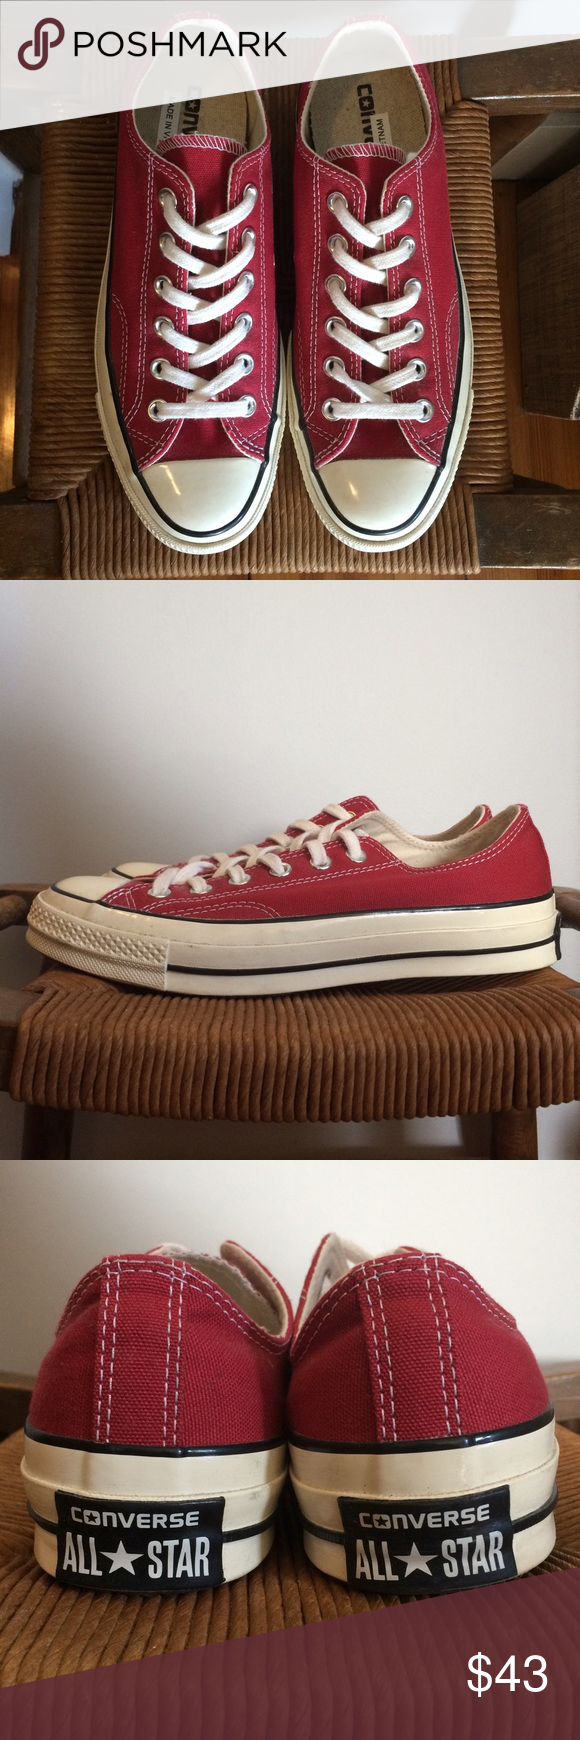 42796c3939ddb0  80 CONVERSE All Star  70s Sneakers in Crimson Red In excellent ...